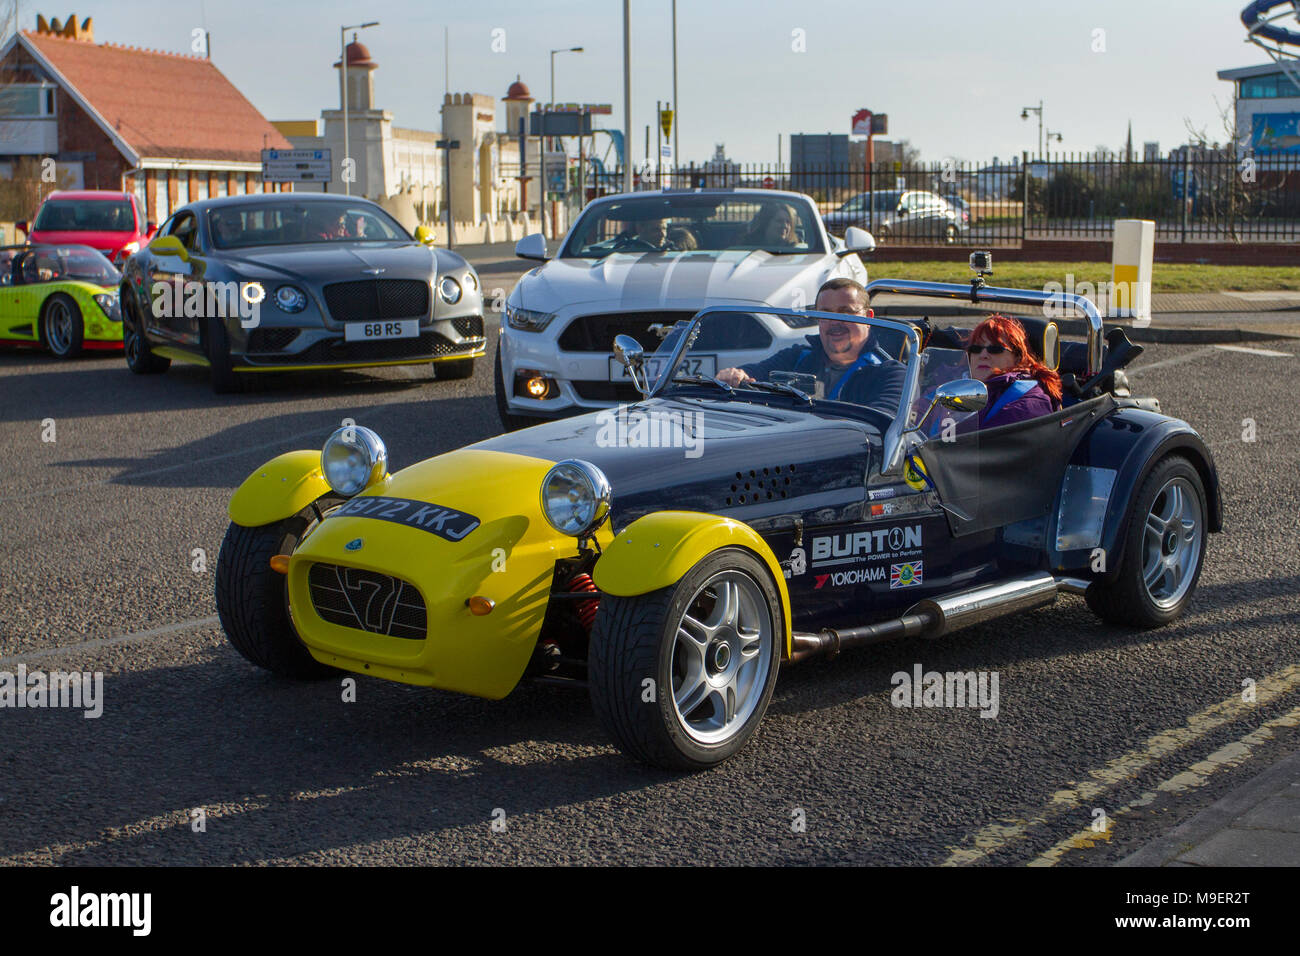 westfield sportscars at southport, merseyside, uk 25th march 2018